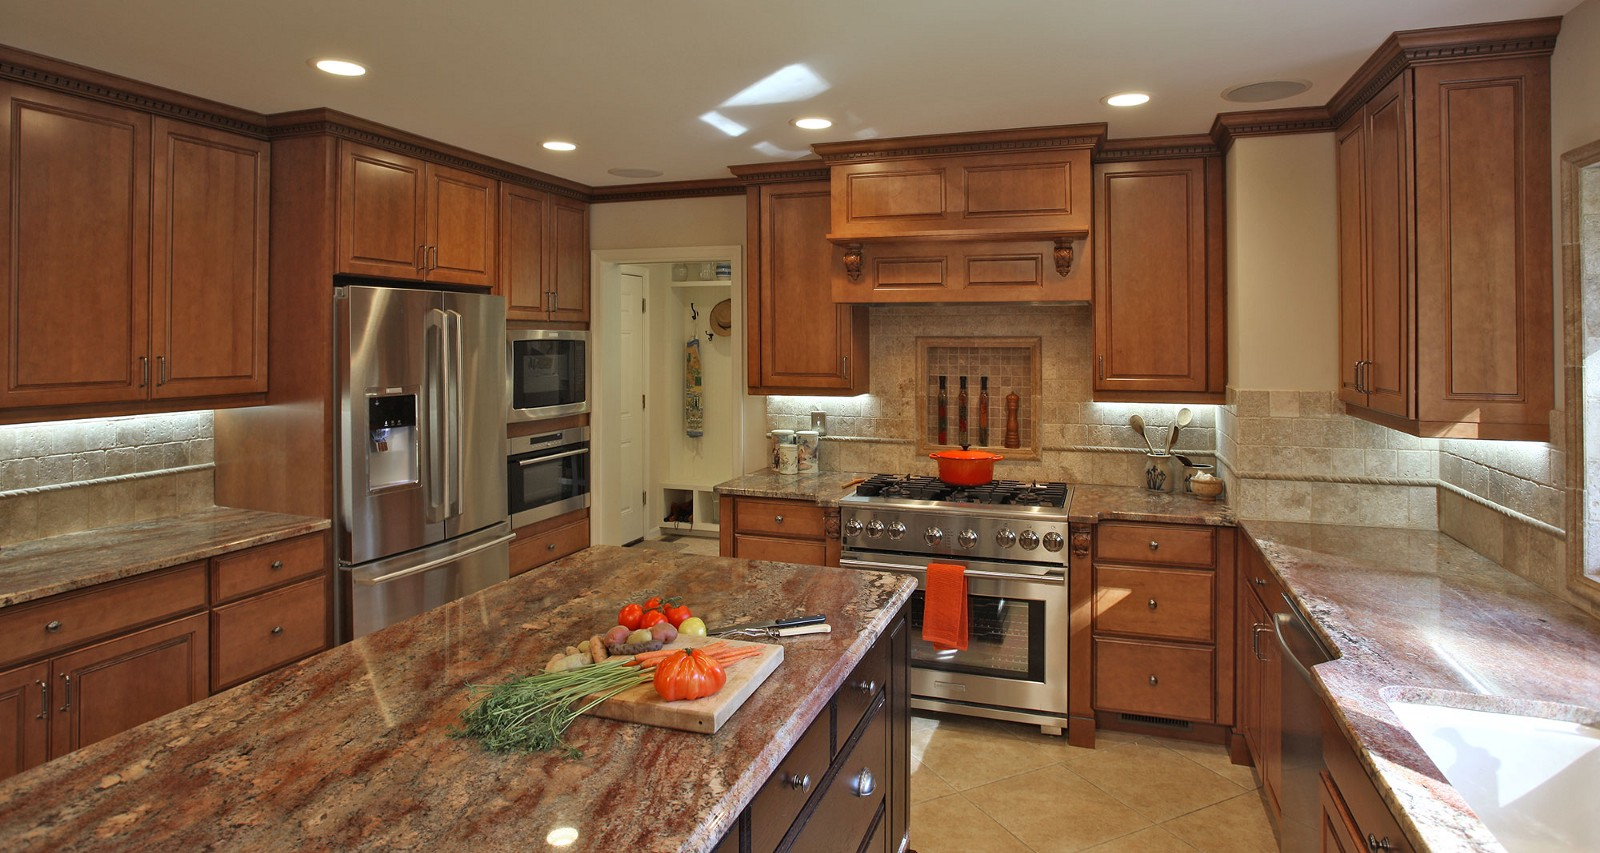 Get Unmatched Kitchen Remodeling Services in Fairfax VA